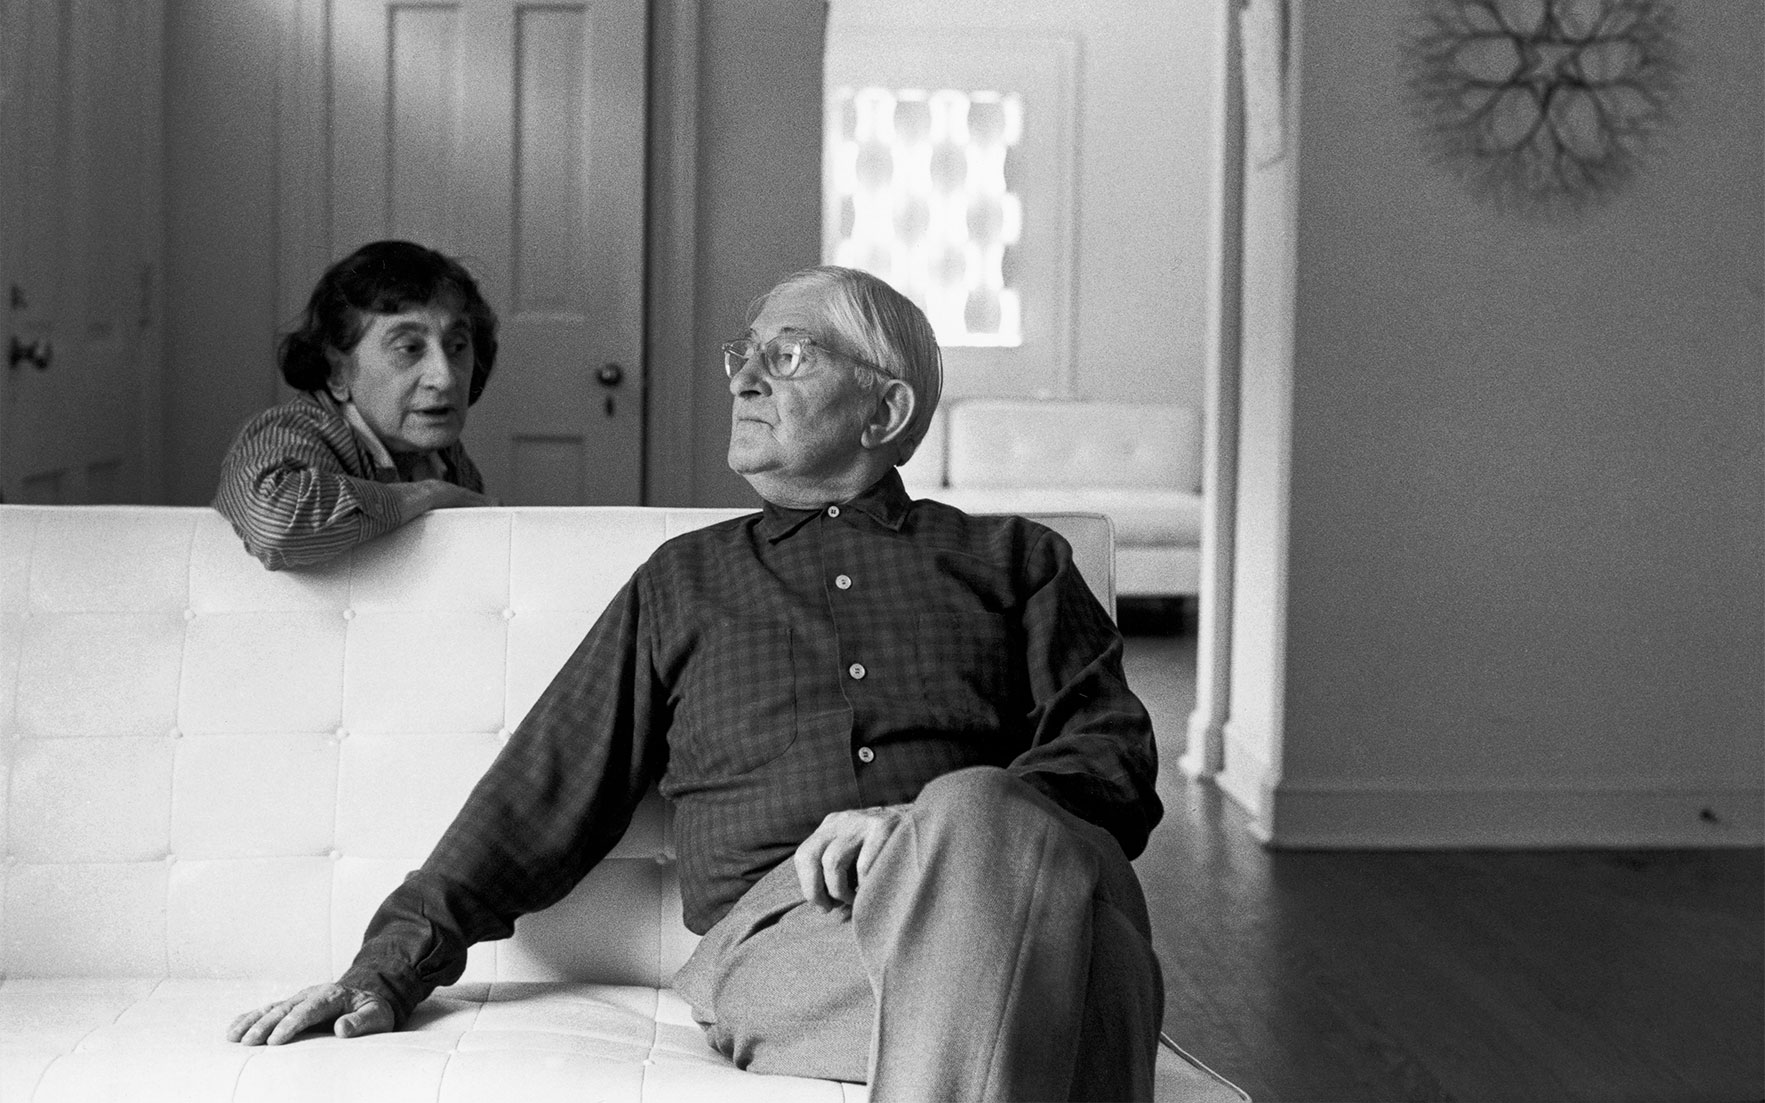 Anni and Josef Albers photographed at home by Henri Cartier-Bresson in 1968. Photo © Henri Cartier-Bresson  Magnum Photos